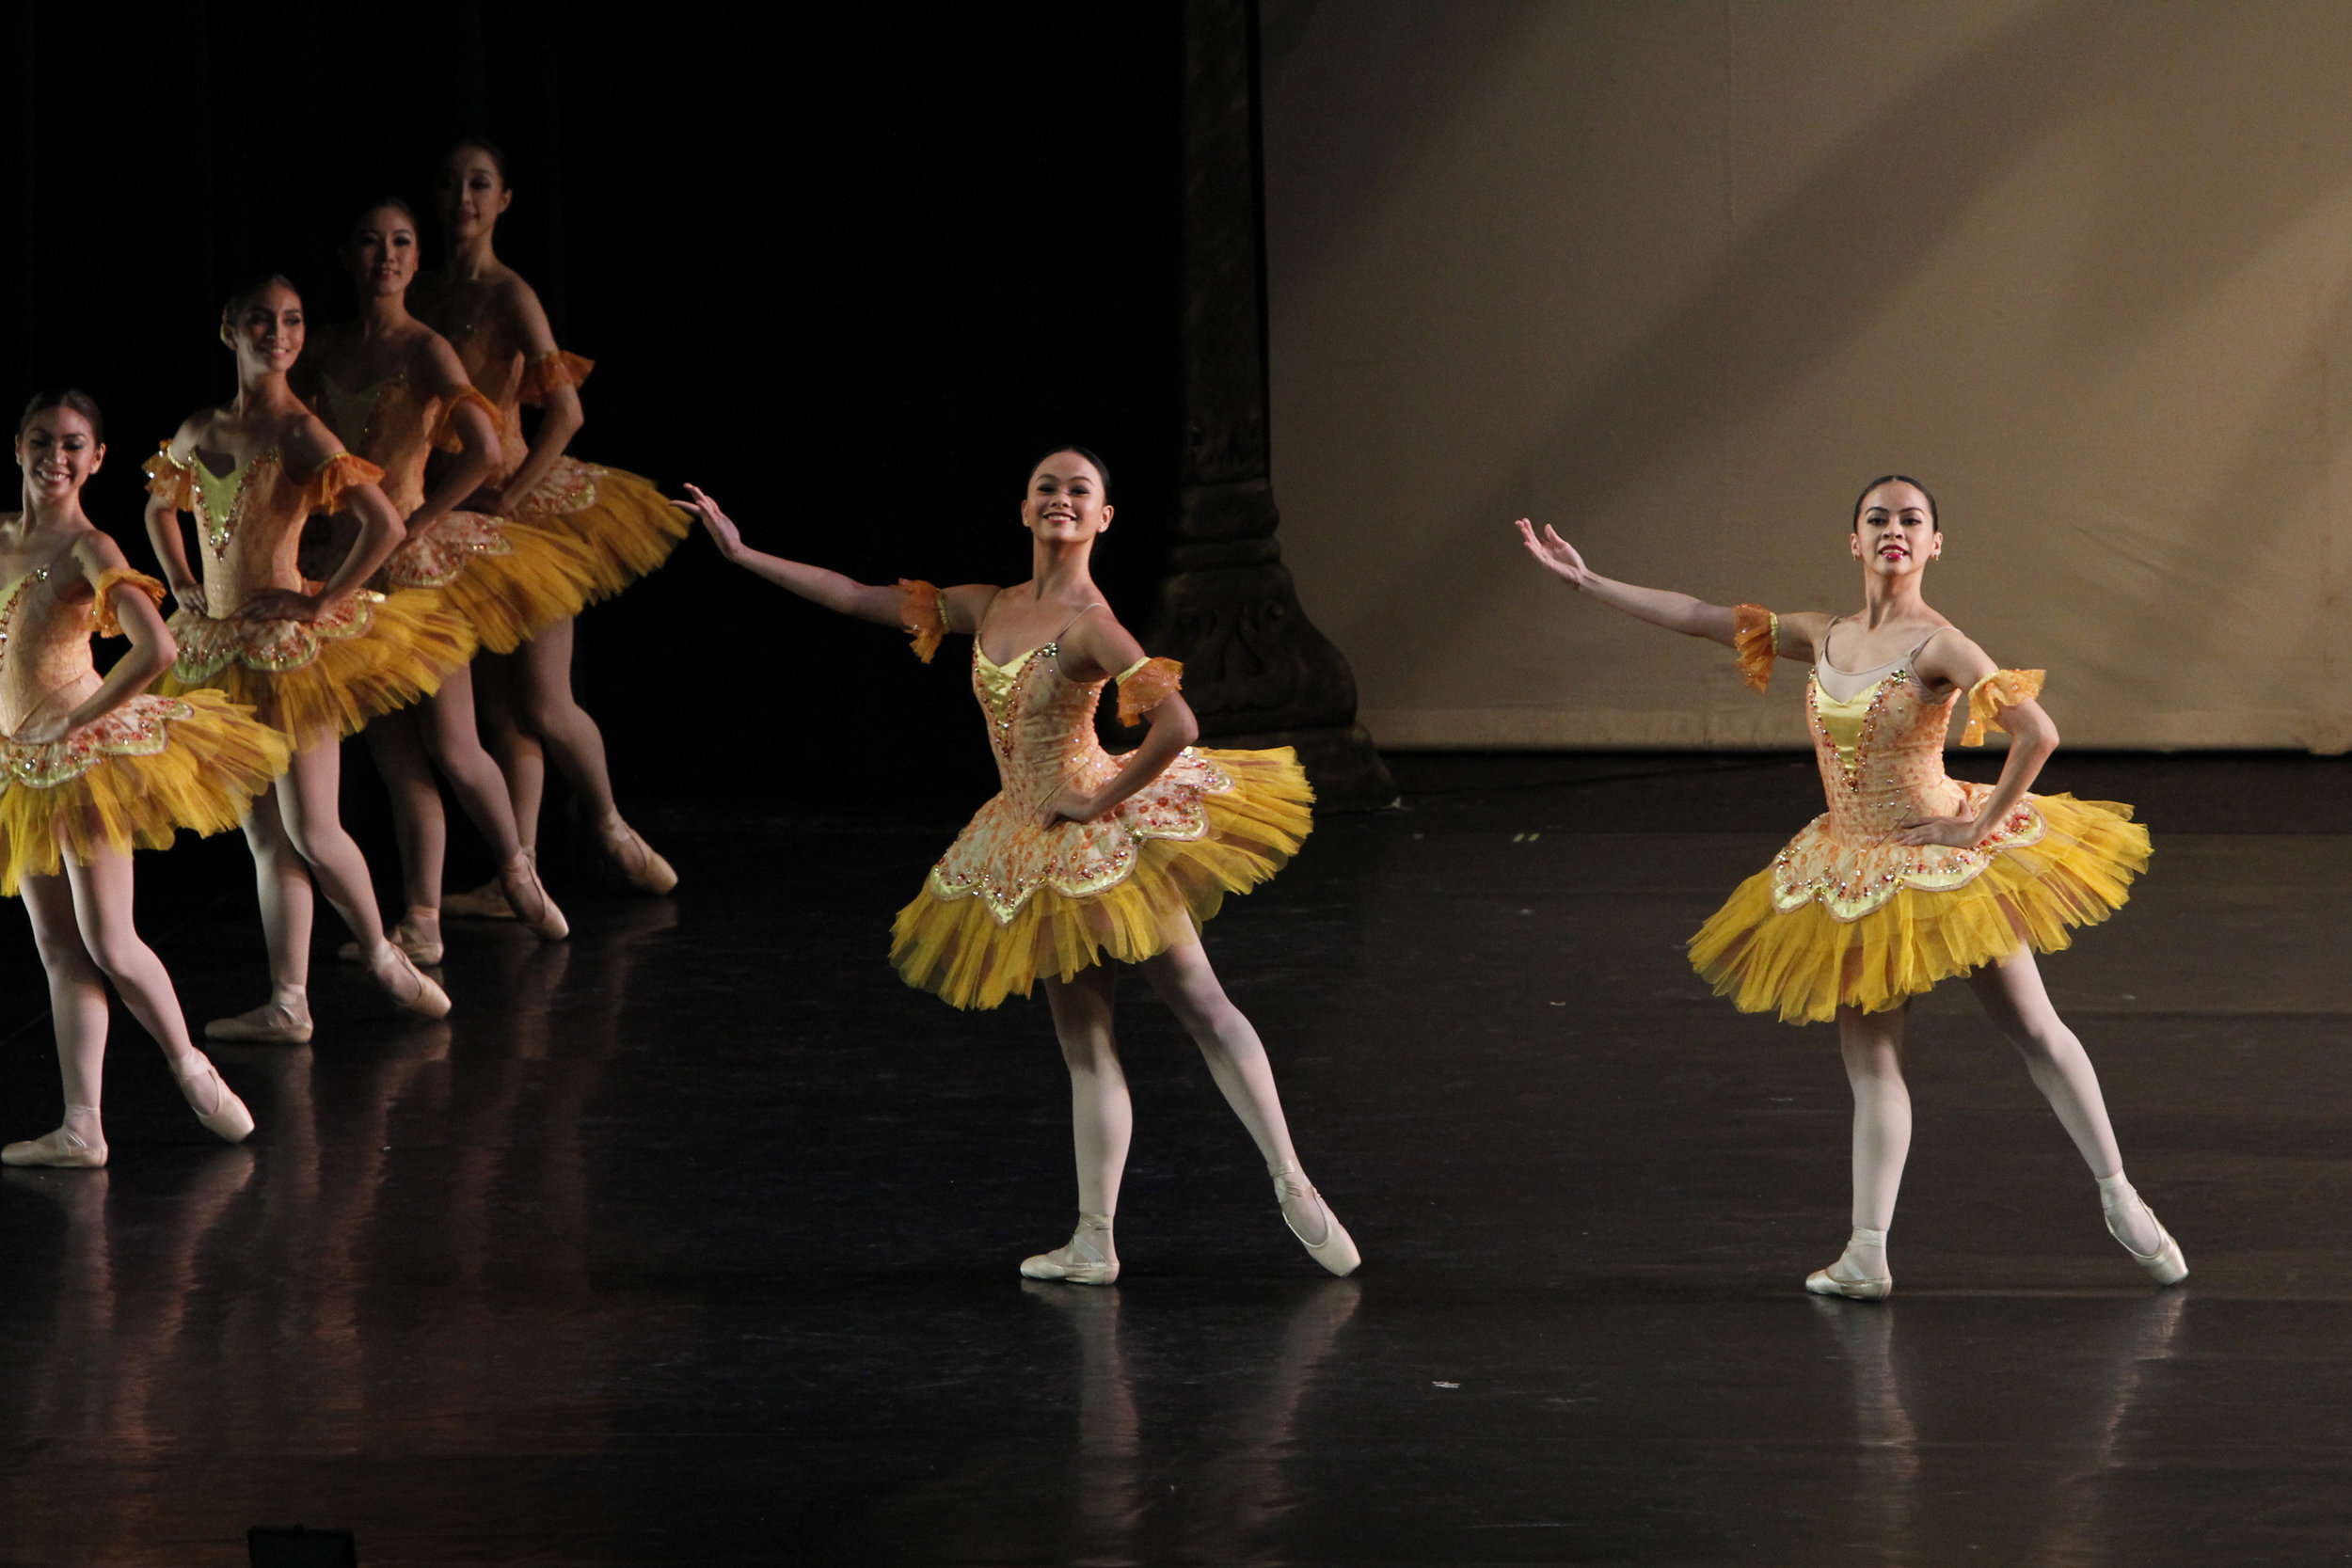 Rissa May (center) was among the dancers featured in    Paquita   , excerpted in    BM 2.0   , Ballet Manila's 20th anniversary show in 2015.